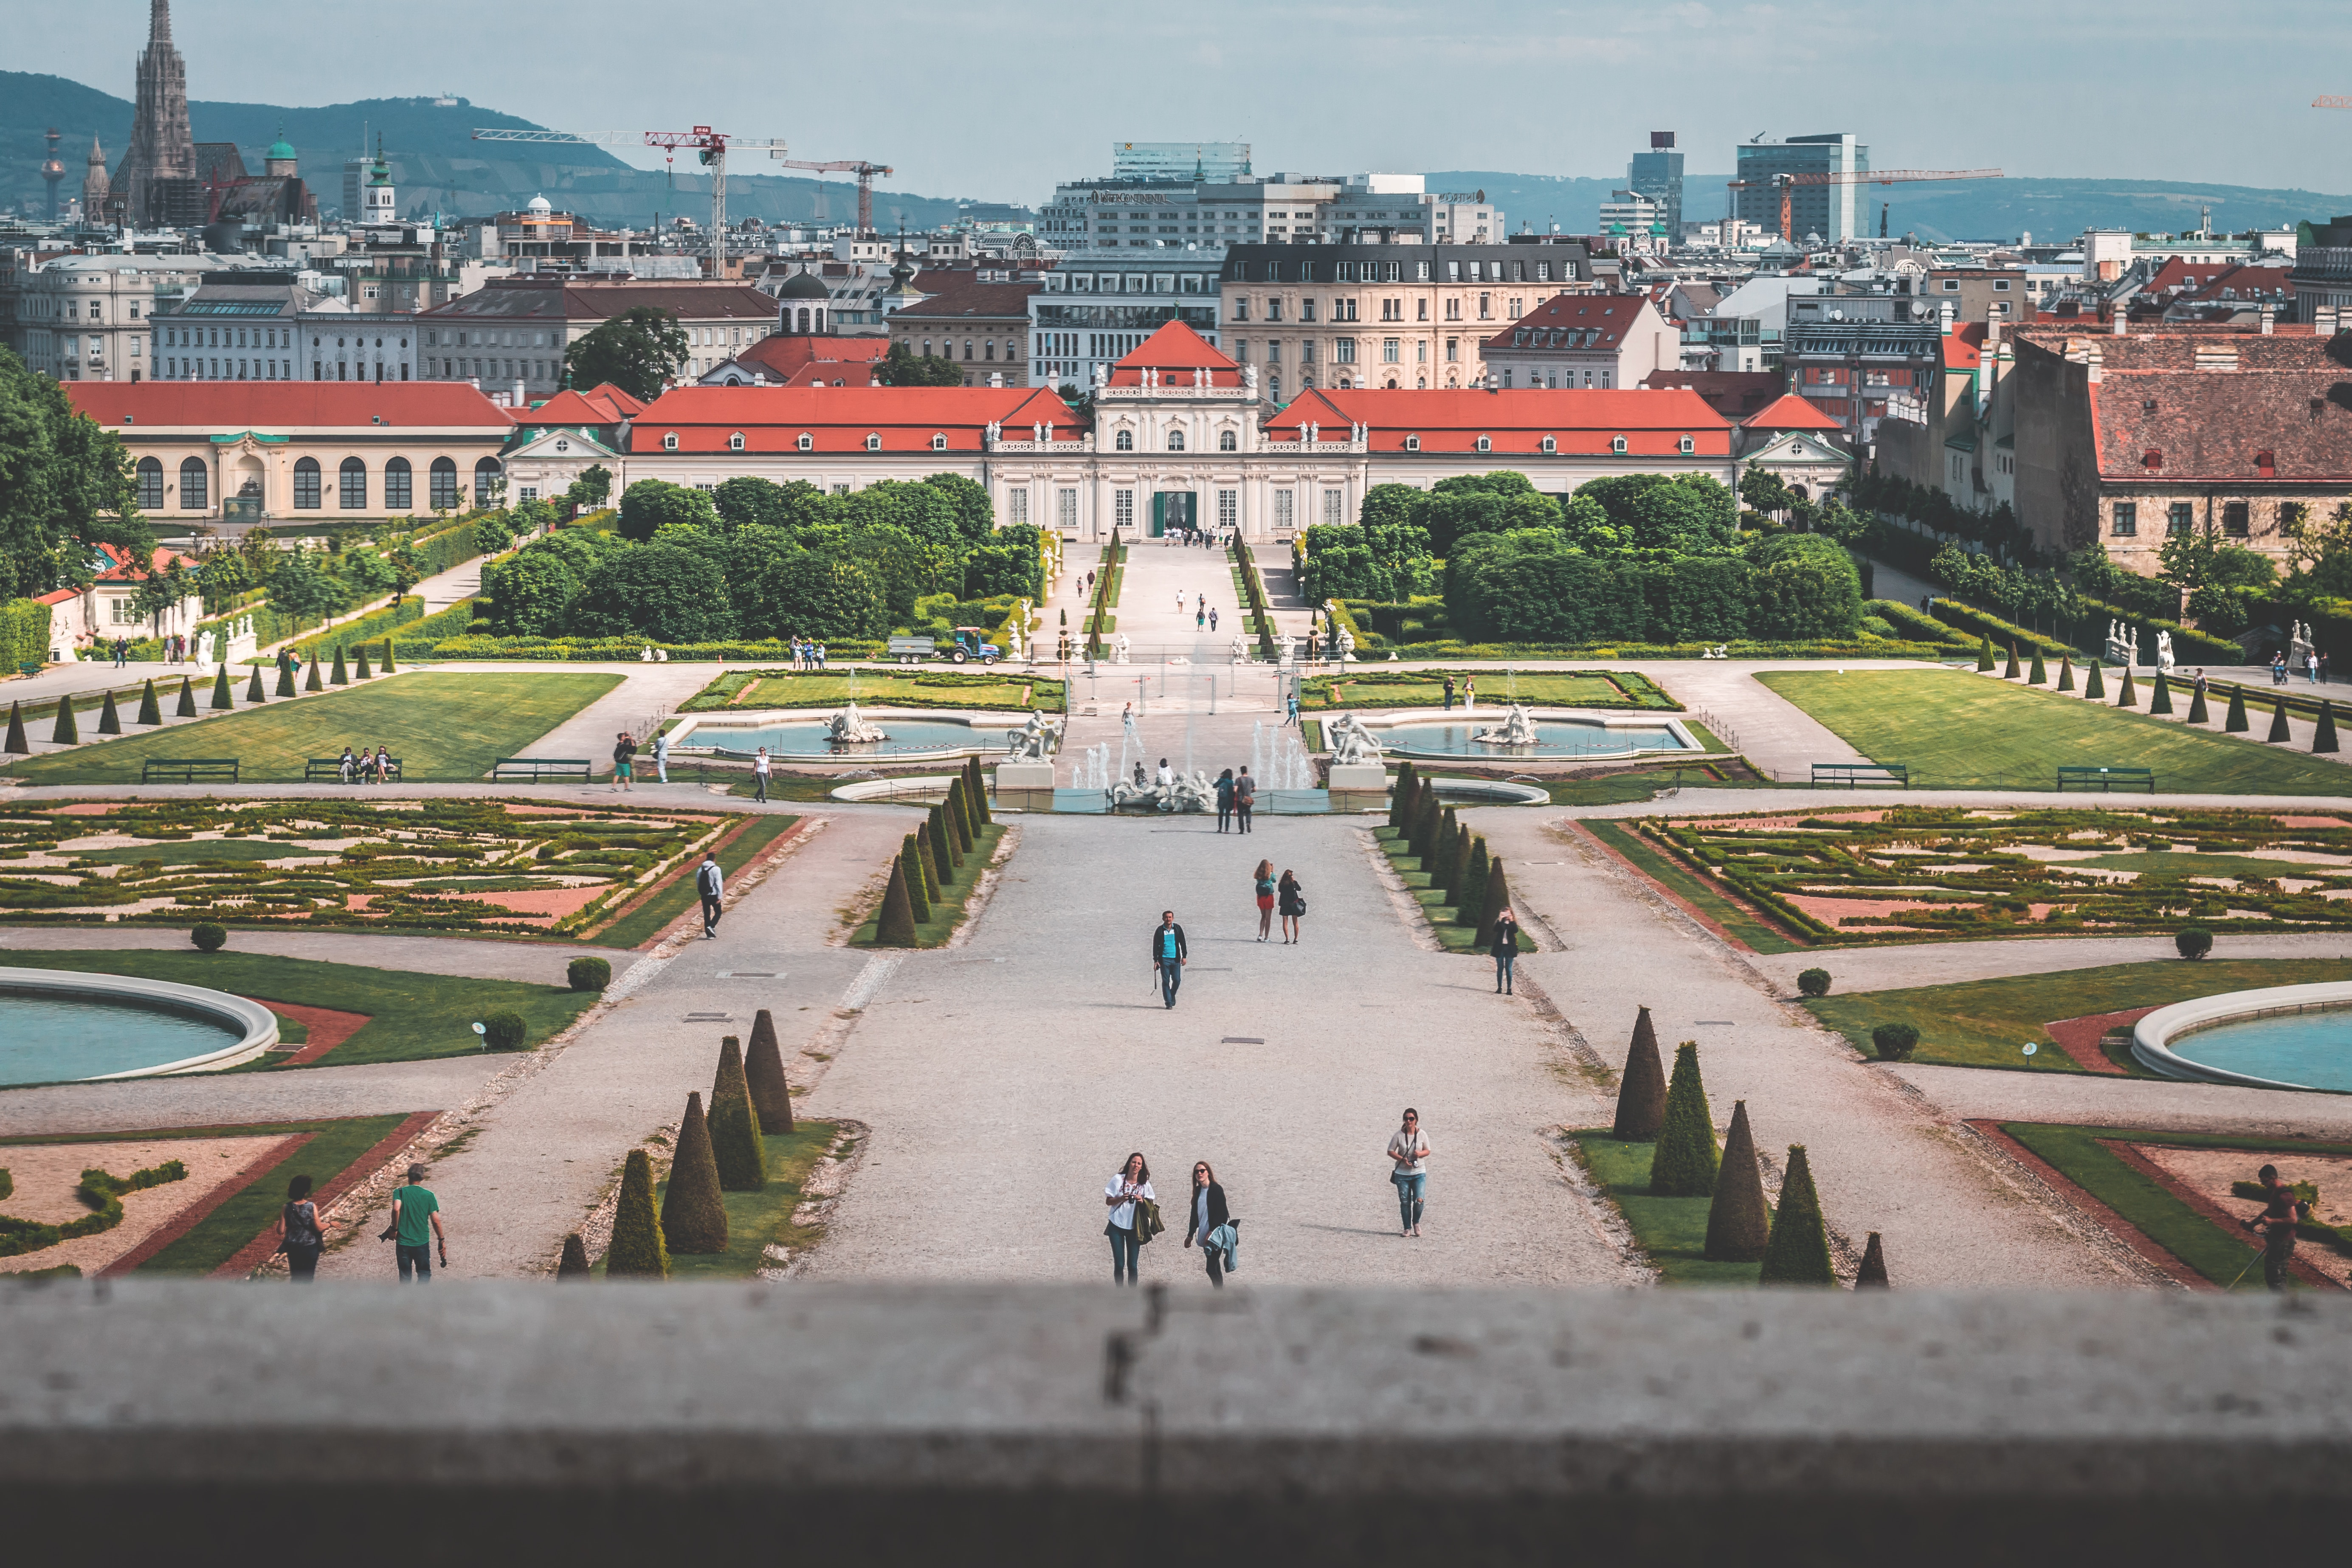 Belvedere Palace, Viena. Photo By Daniel Plan On Unsplash.